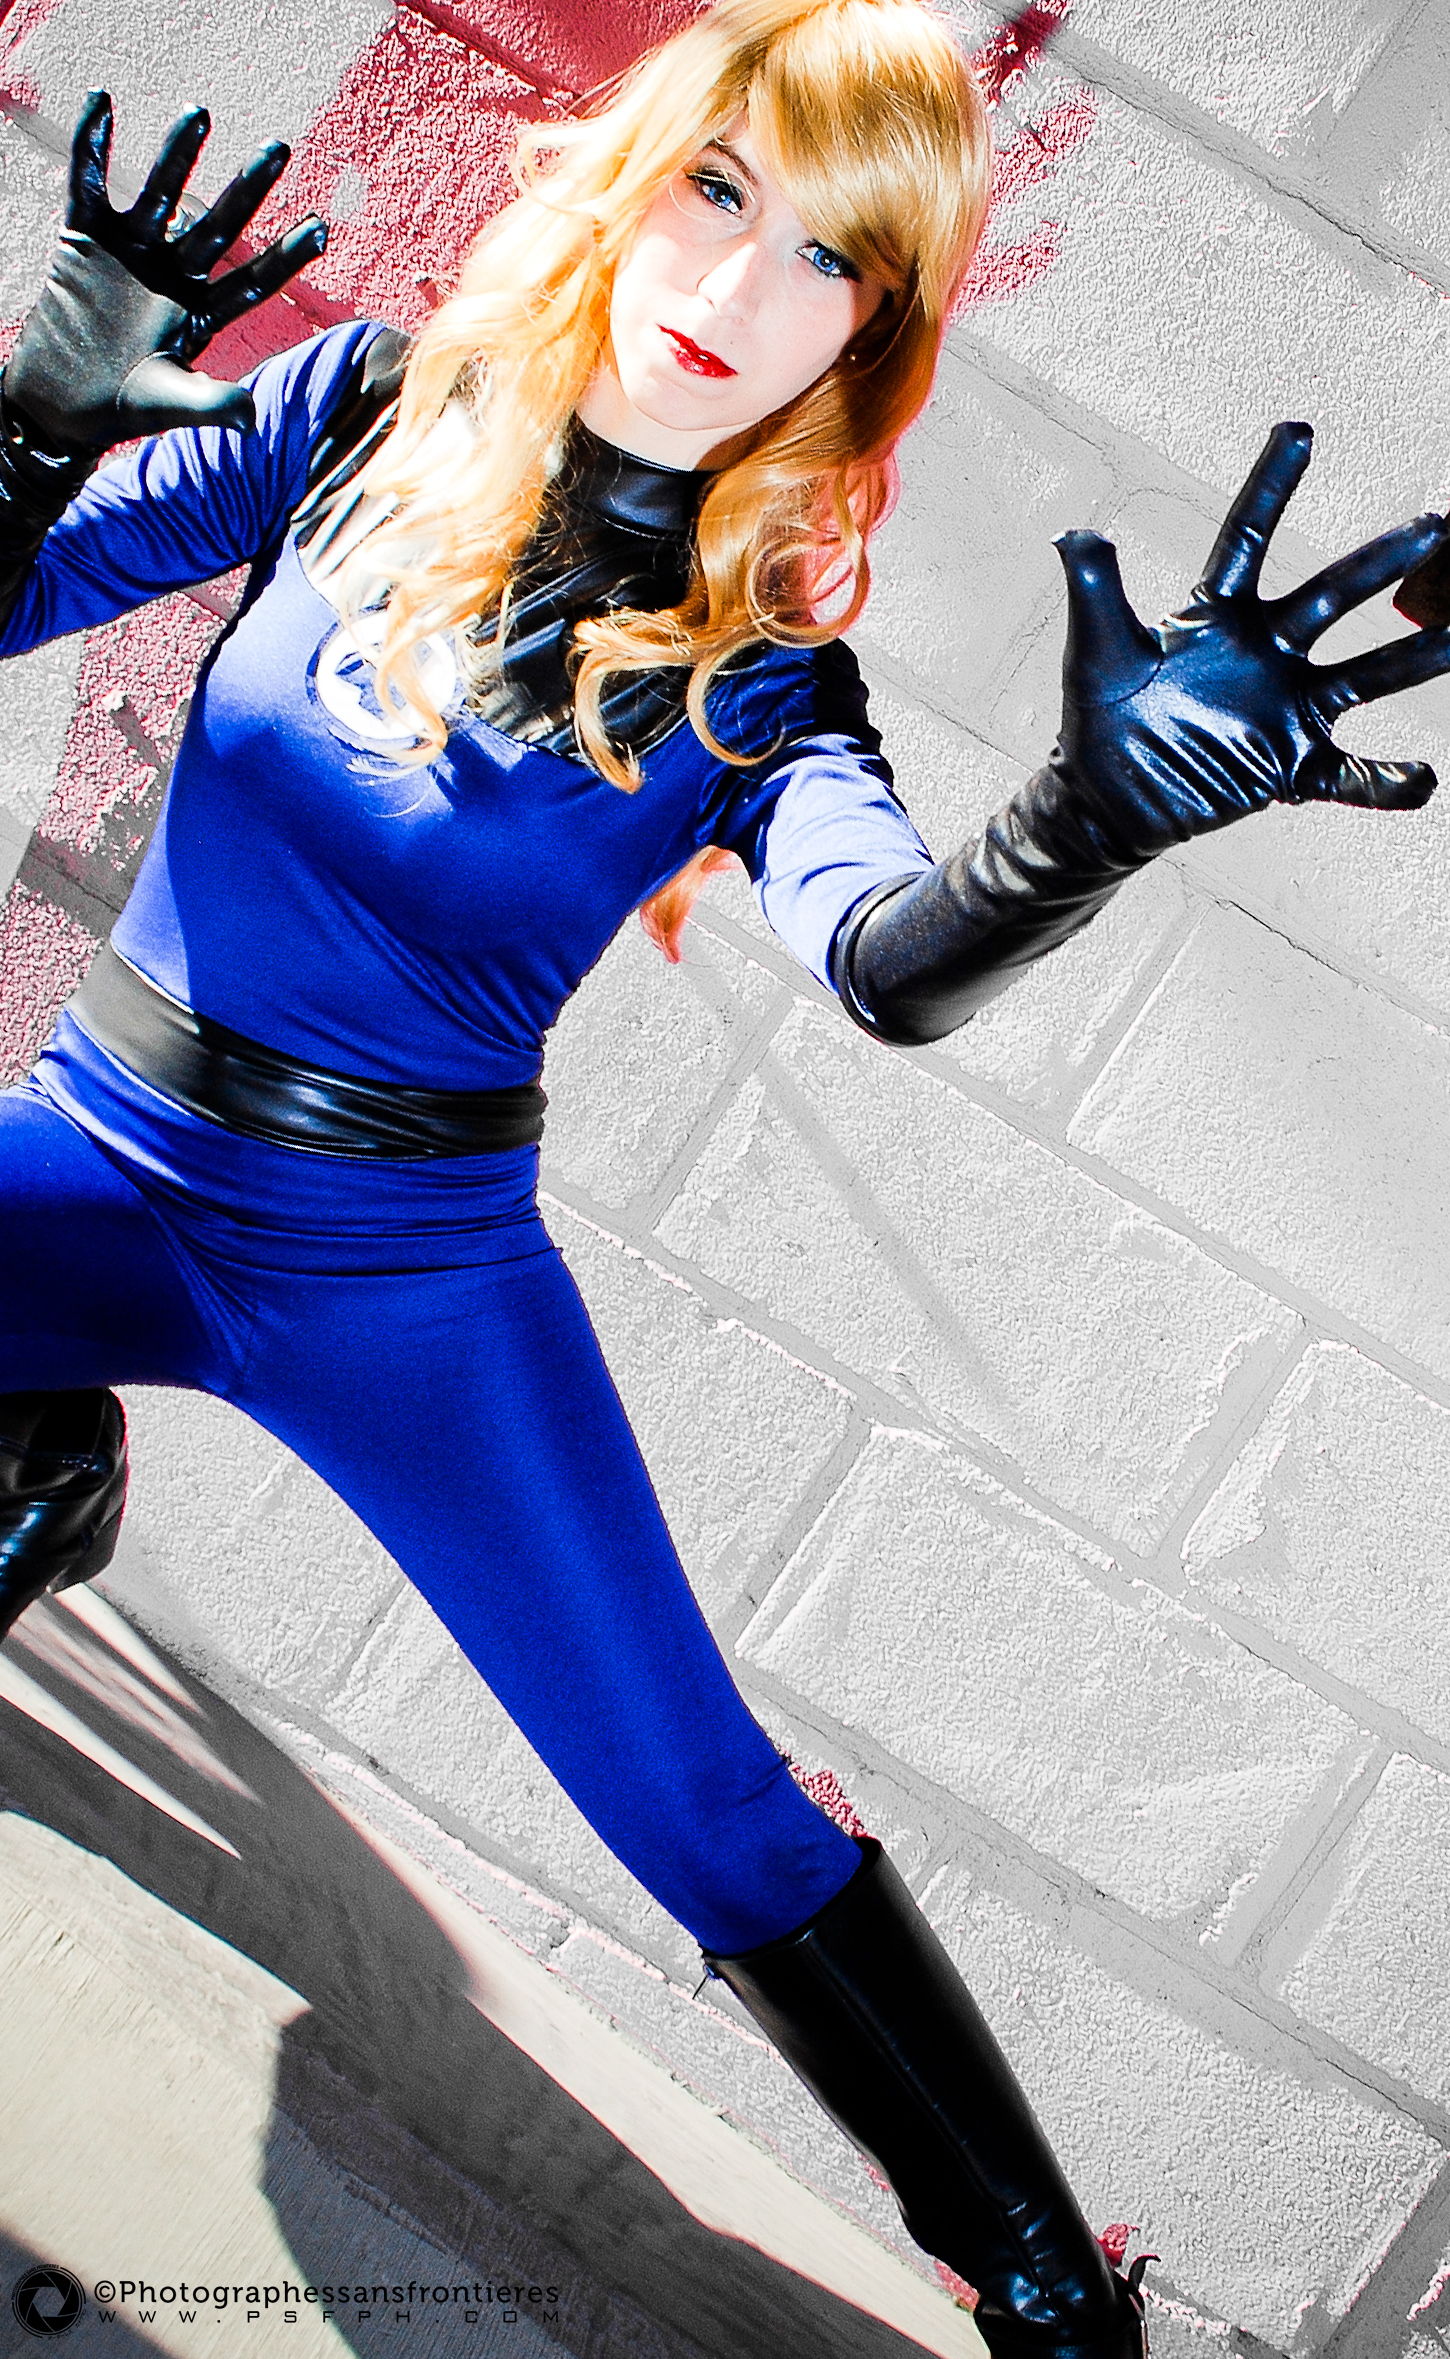 Blackro  is Invisible Woman | Photo by:  Photographes Sans Frontieres